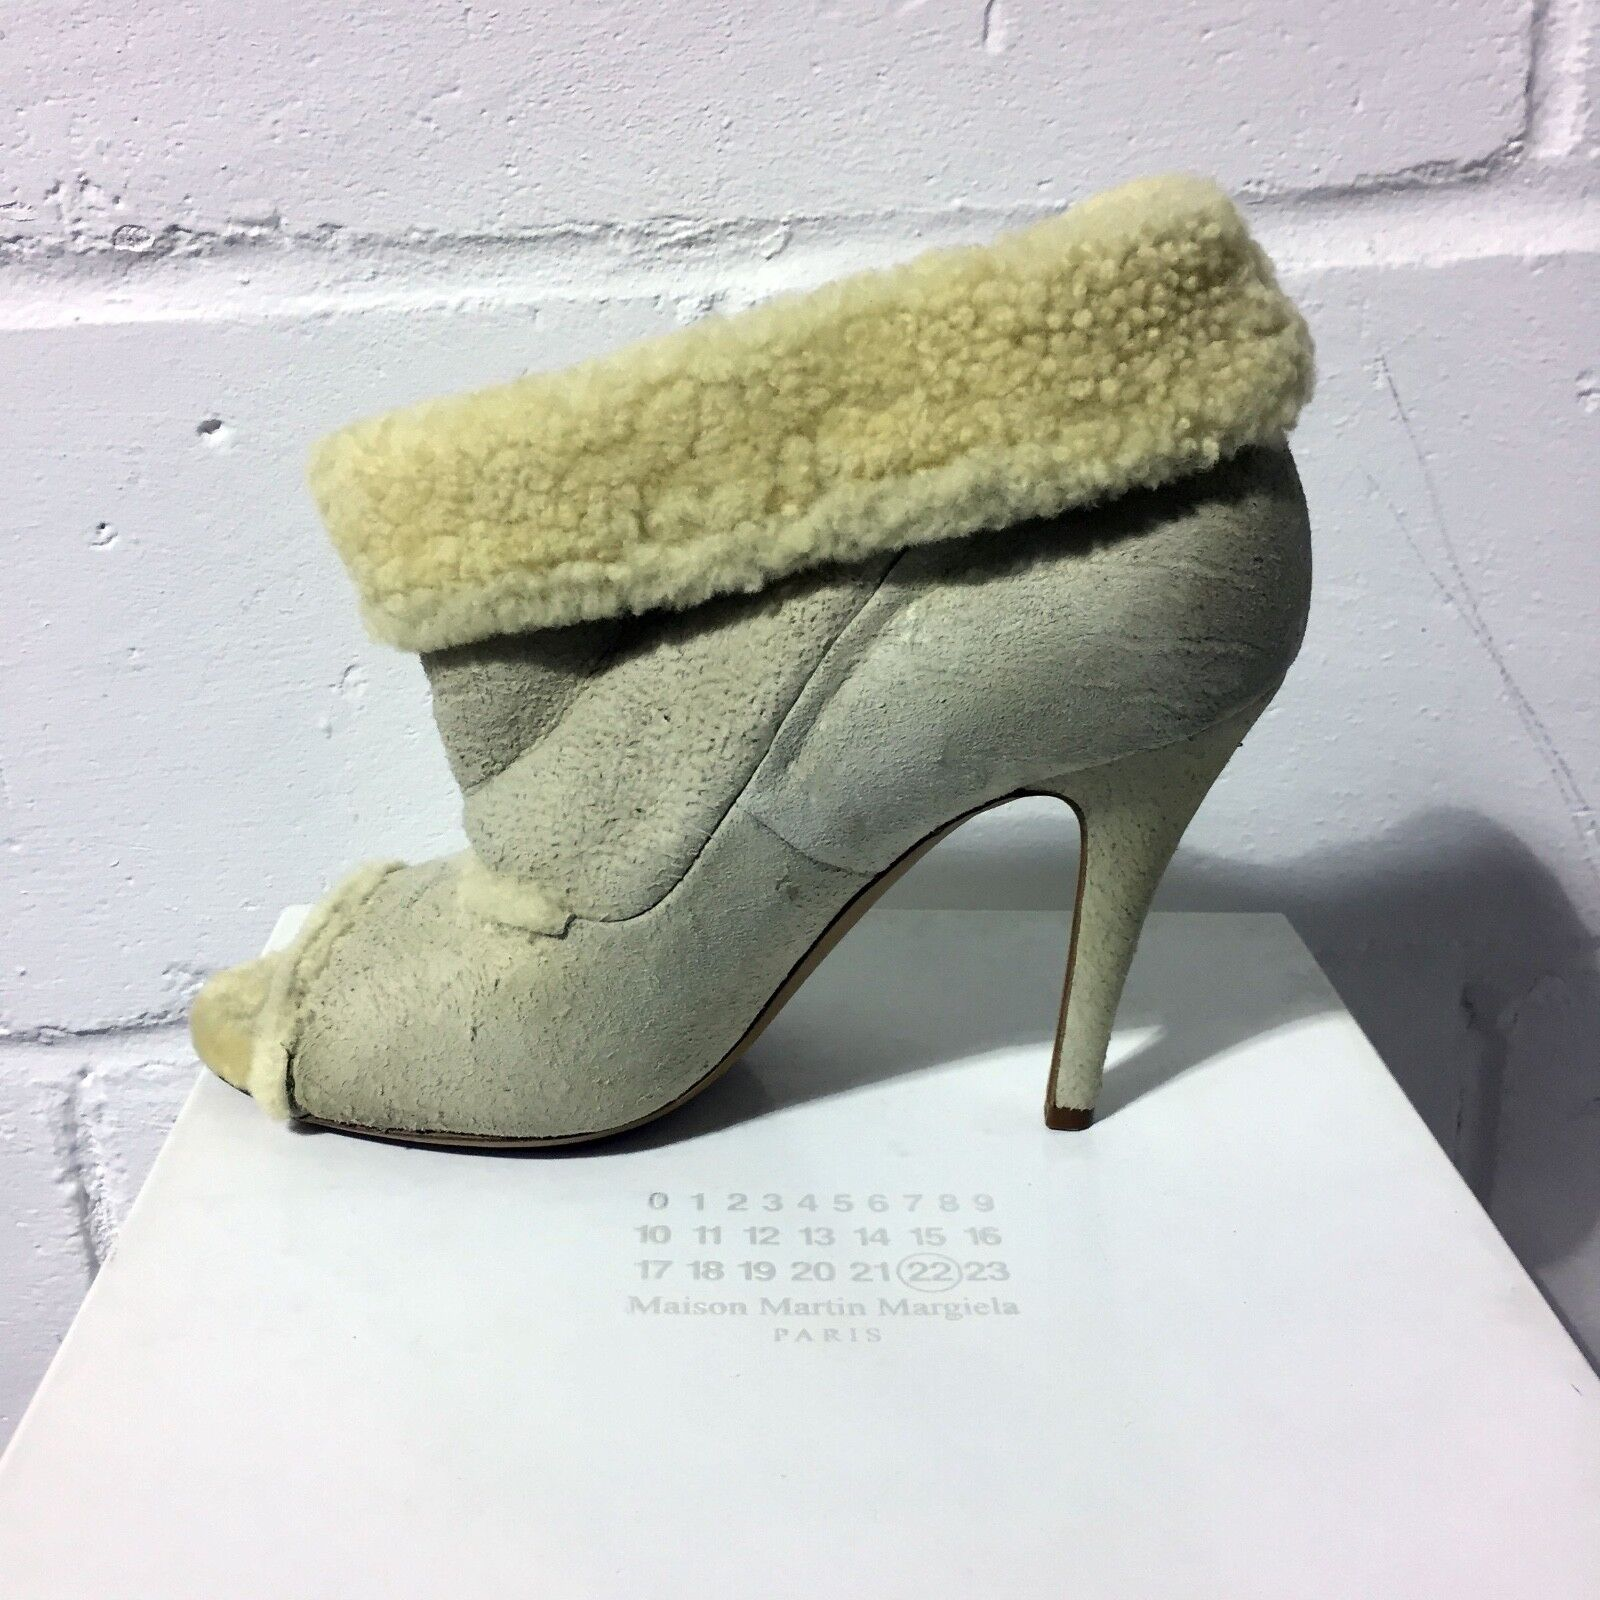 Martin Maison Margiela Peep Toe Suede Shearling Boots Size 7 and 8